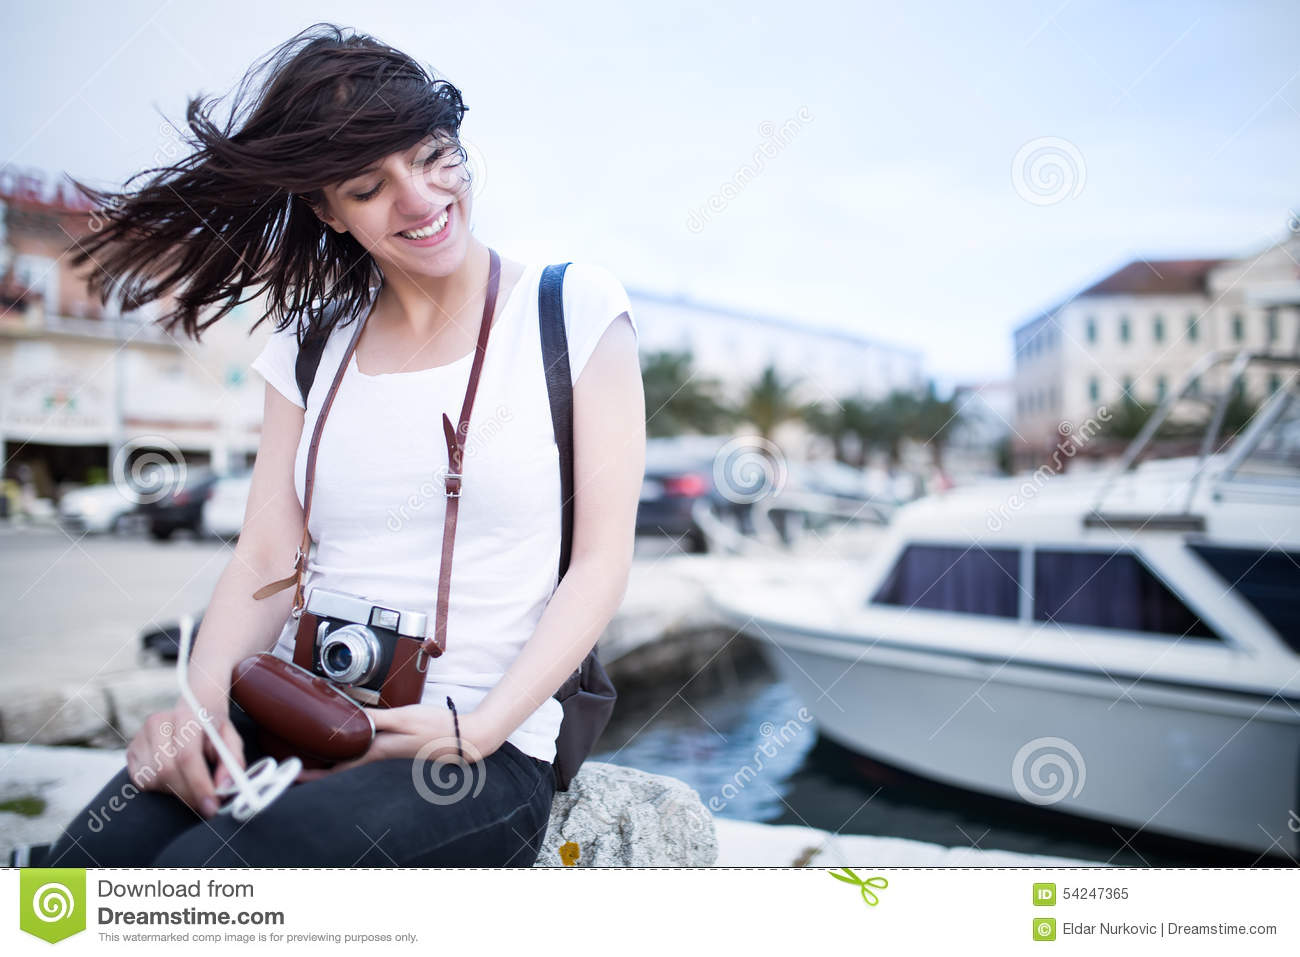 Summer beach woman fun holding vintage retro camera laughing and smiling happy during summer holiday vacation travel